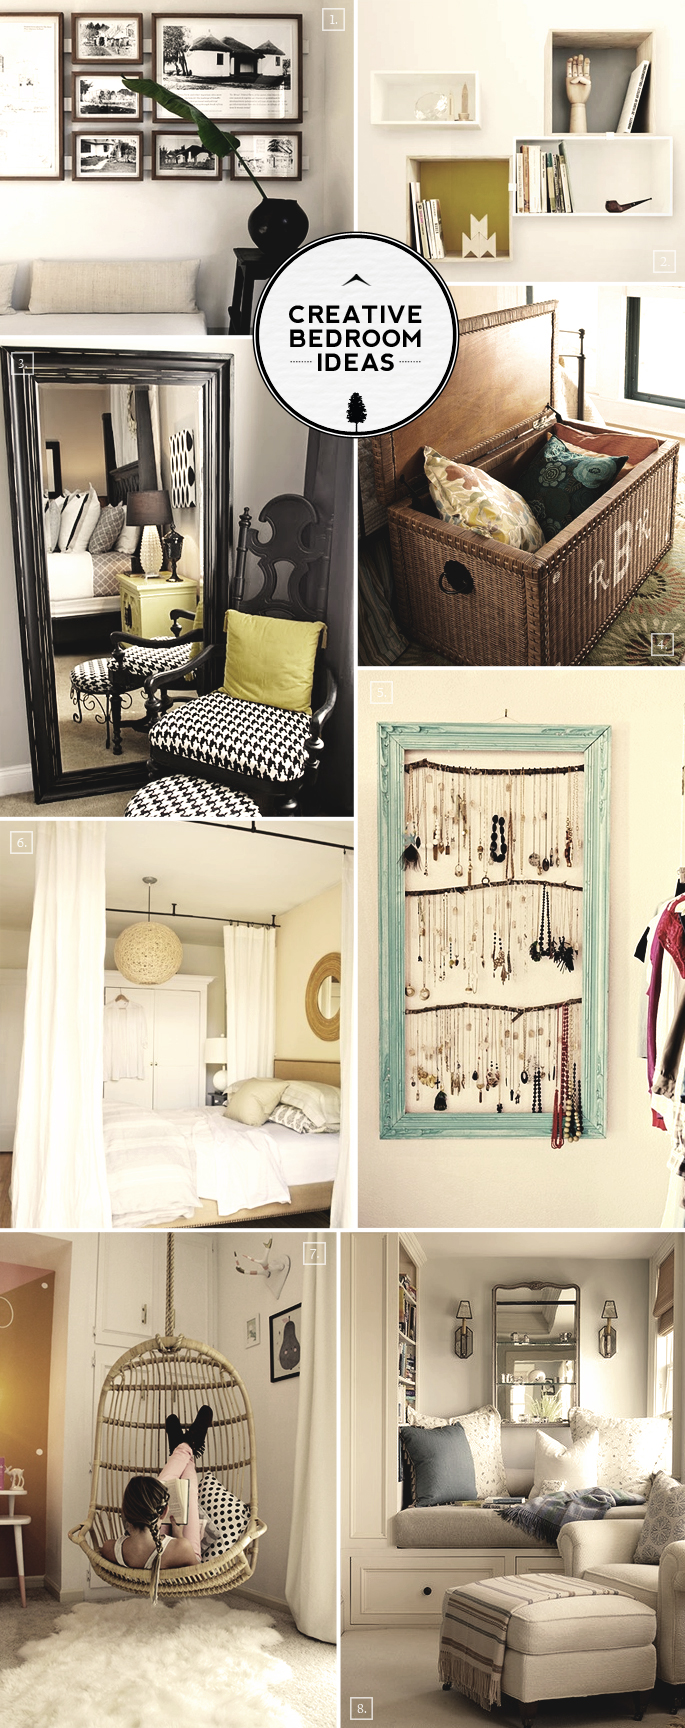 Creative Bedroom Ideas: From Reading Nooks to Hanging Chairs ...